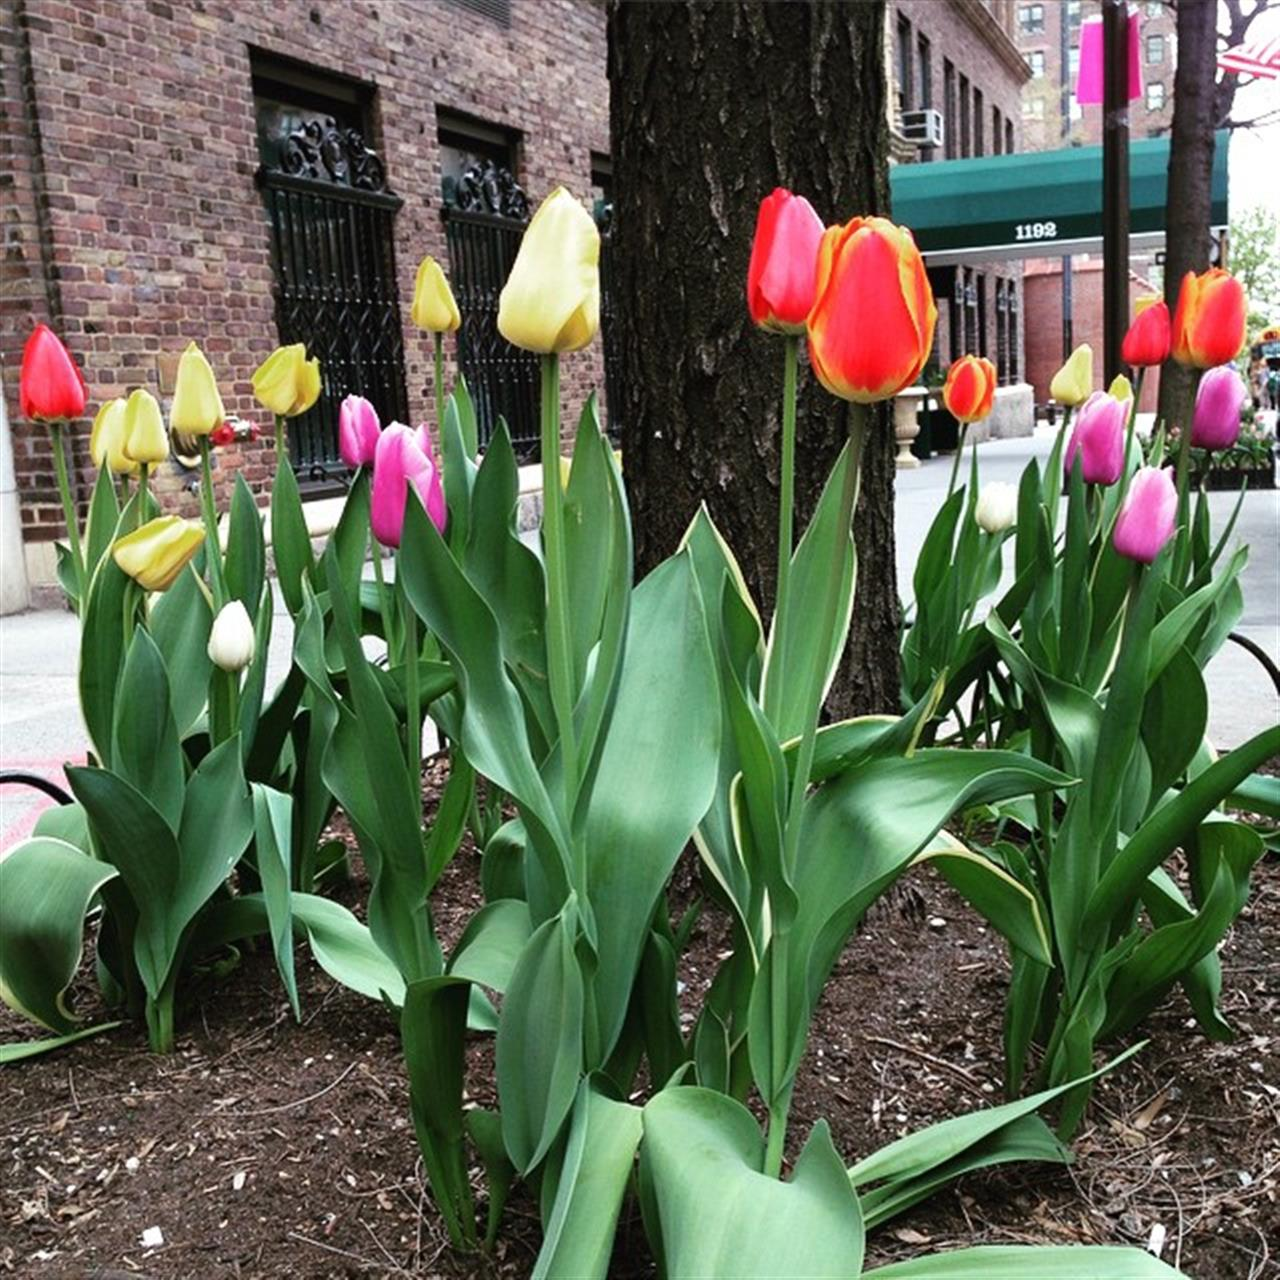 I have always loved tulips. When they pop up in their flower beds along Park Avenue in Carnegie Hill, it's a sure sign of spring.  Happy May!  #LeadingRElocal #ExploreYourHood #UpperEastSide #CarnegieHill #NYC #realestate